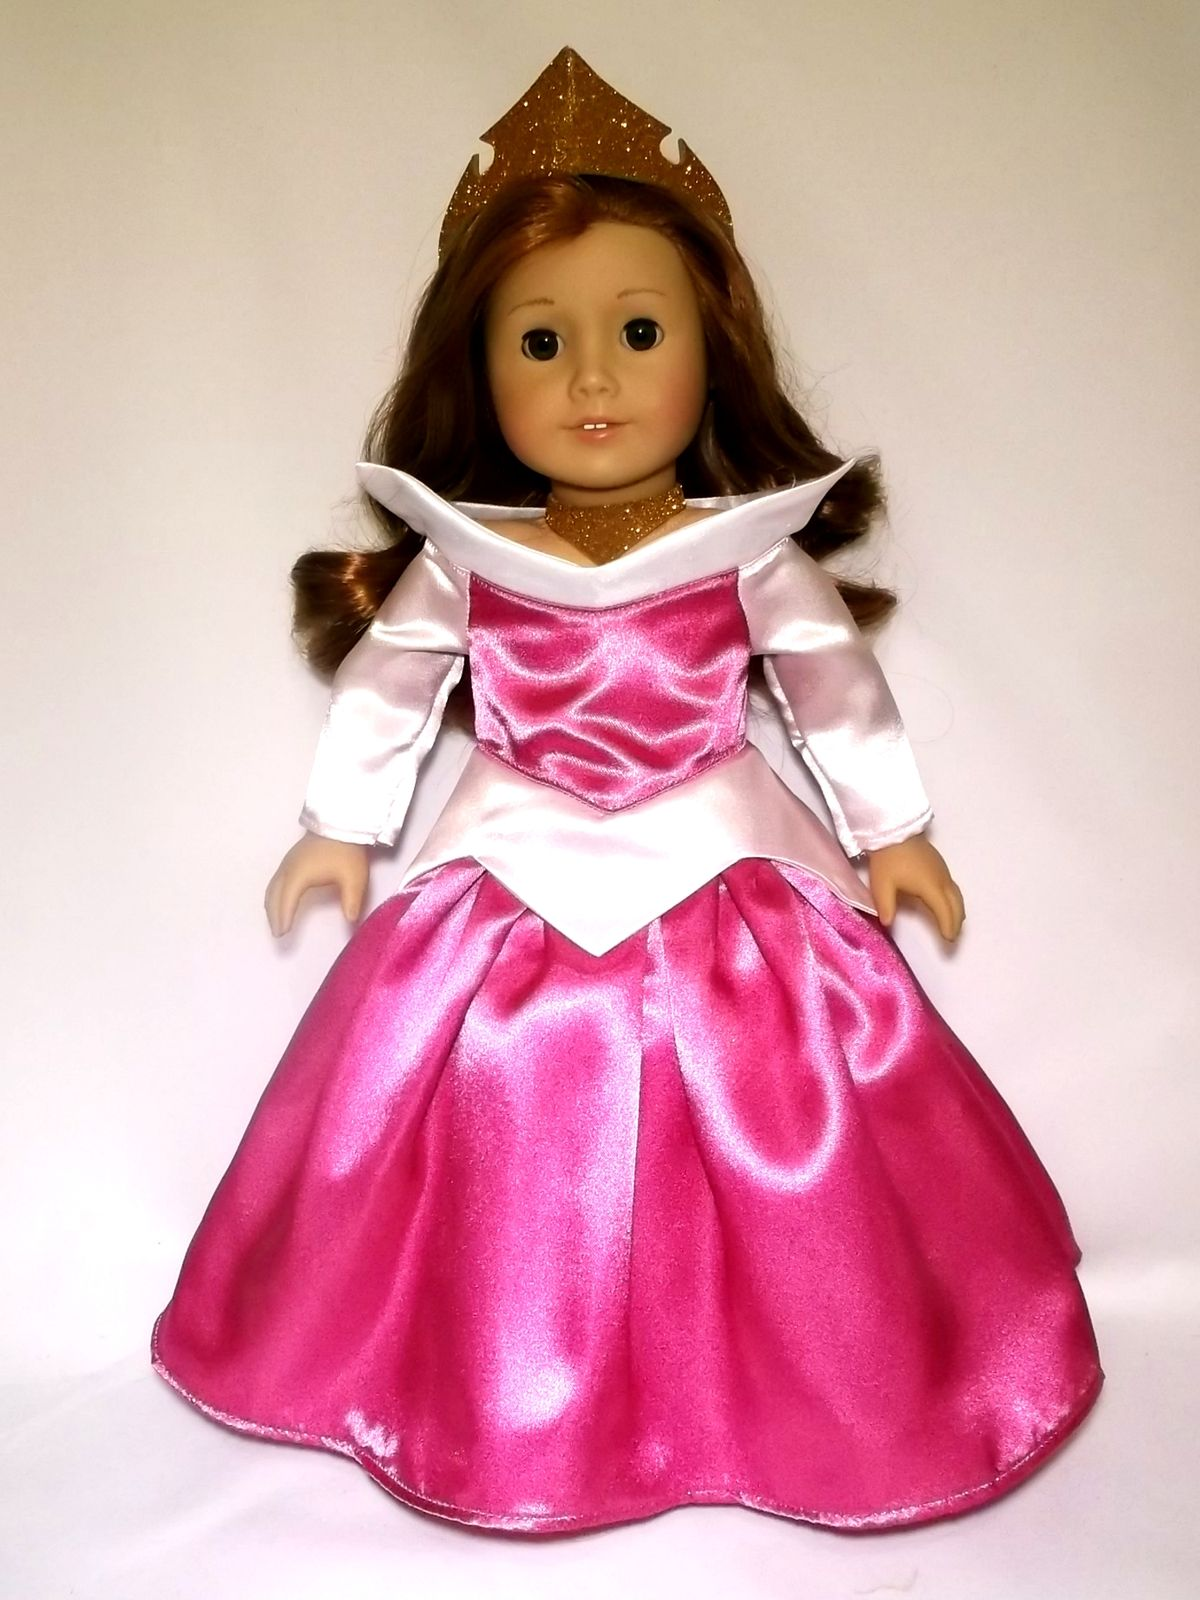 Christmas Doll Clothes Sleeping Beauty Party Dress+Tiara Hairpin 18 Inch Girl A